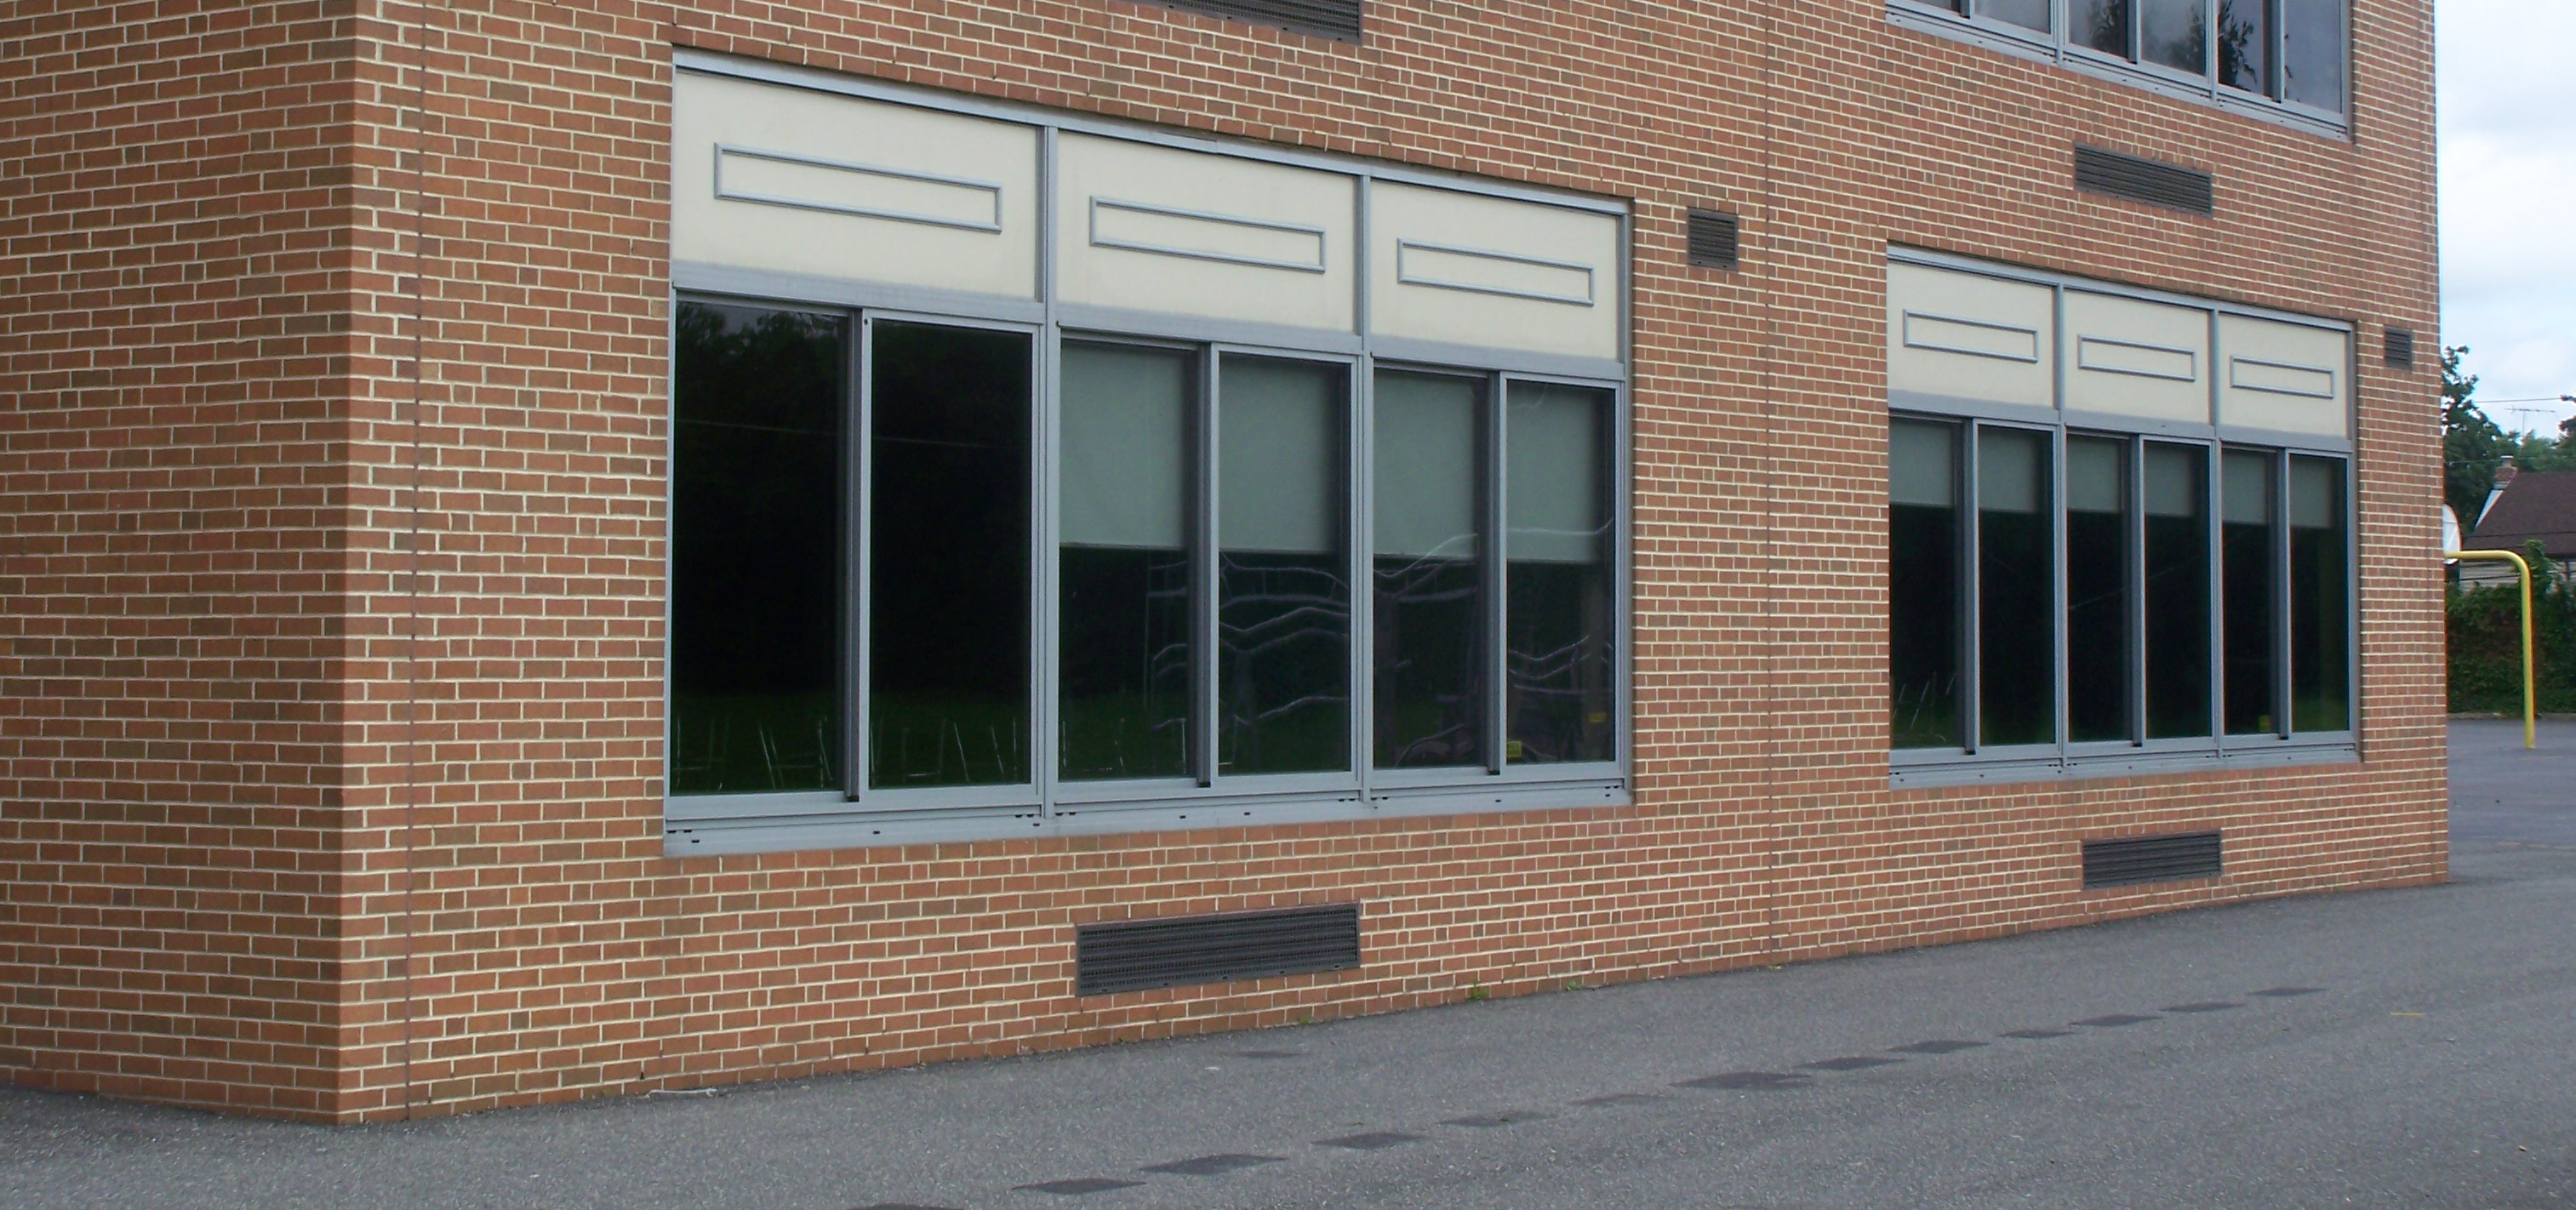 Mak Frankfurt New School Windows Resist Vandalism And Breakage Without Metal Screens